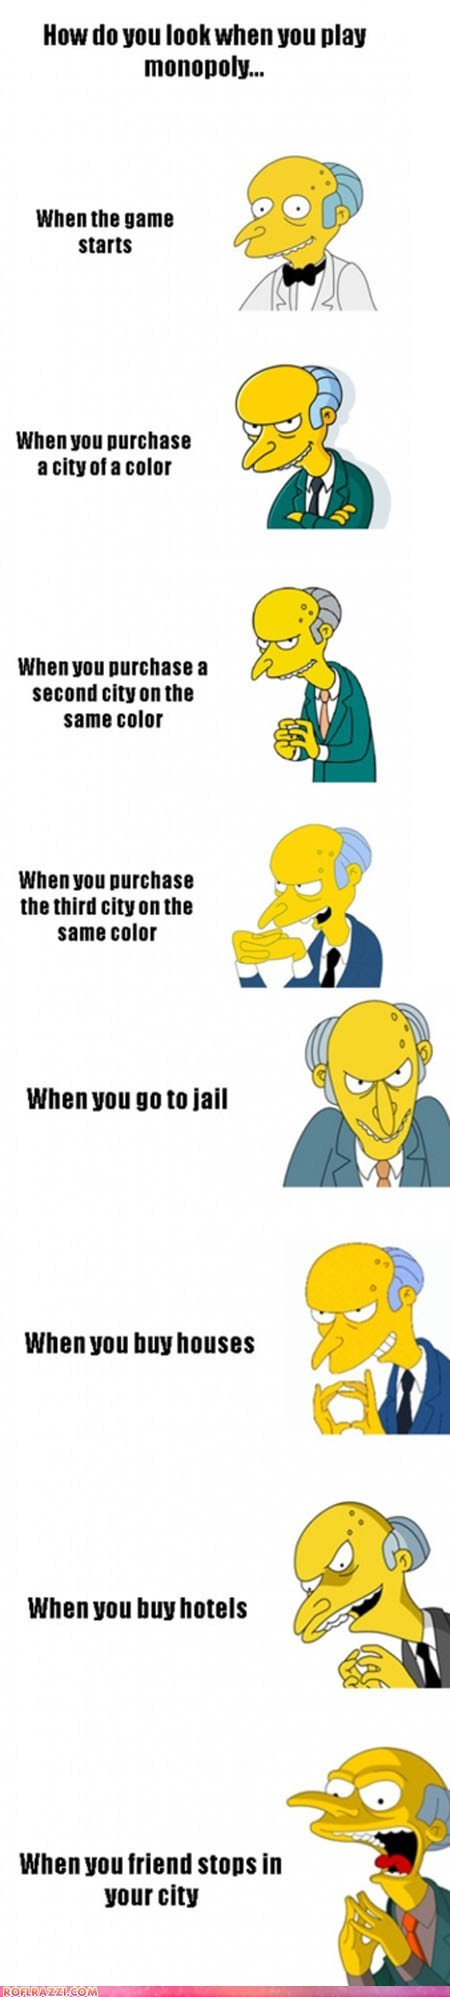 animation funny game Hall of Fame monopoly mr burns the simpsons TV - 6133954816